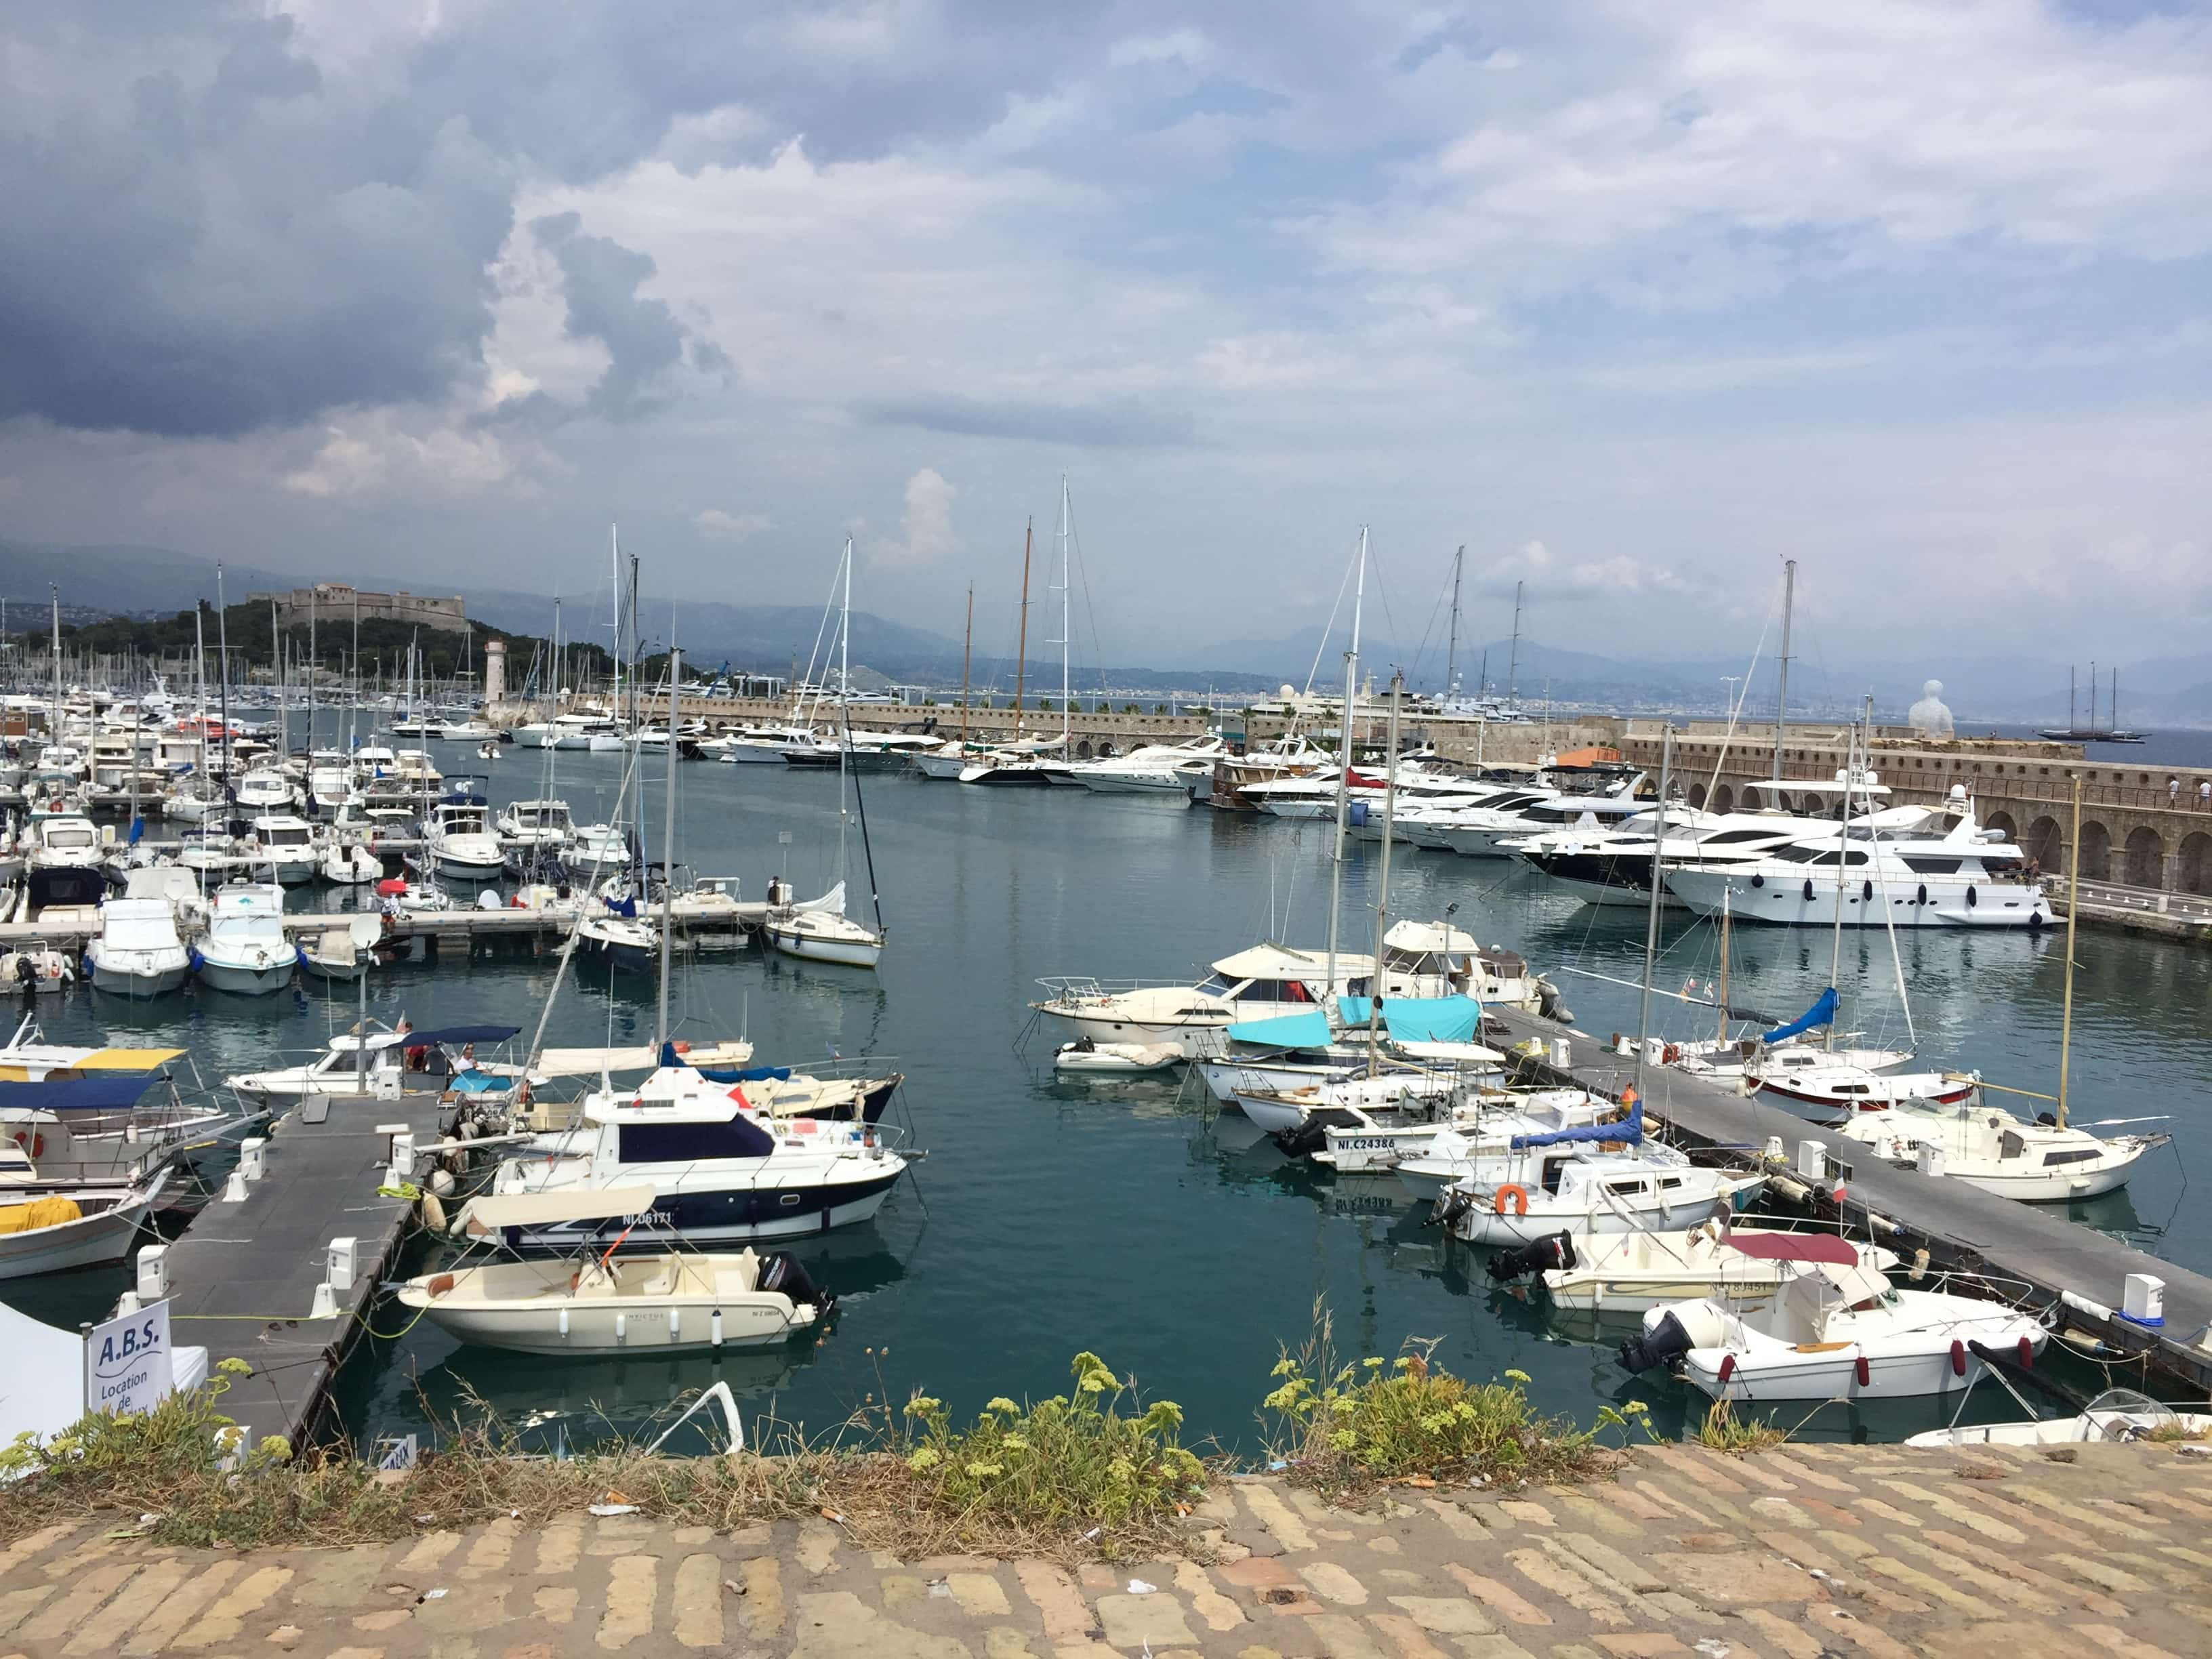 Boats in the harbour of Antibes